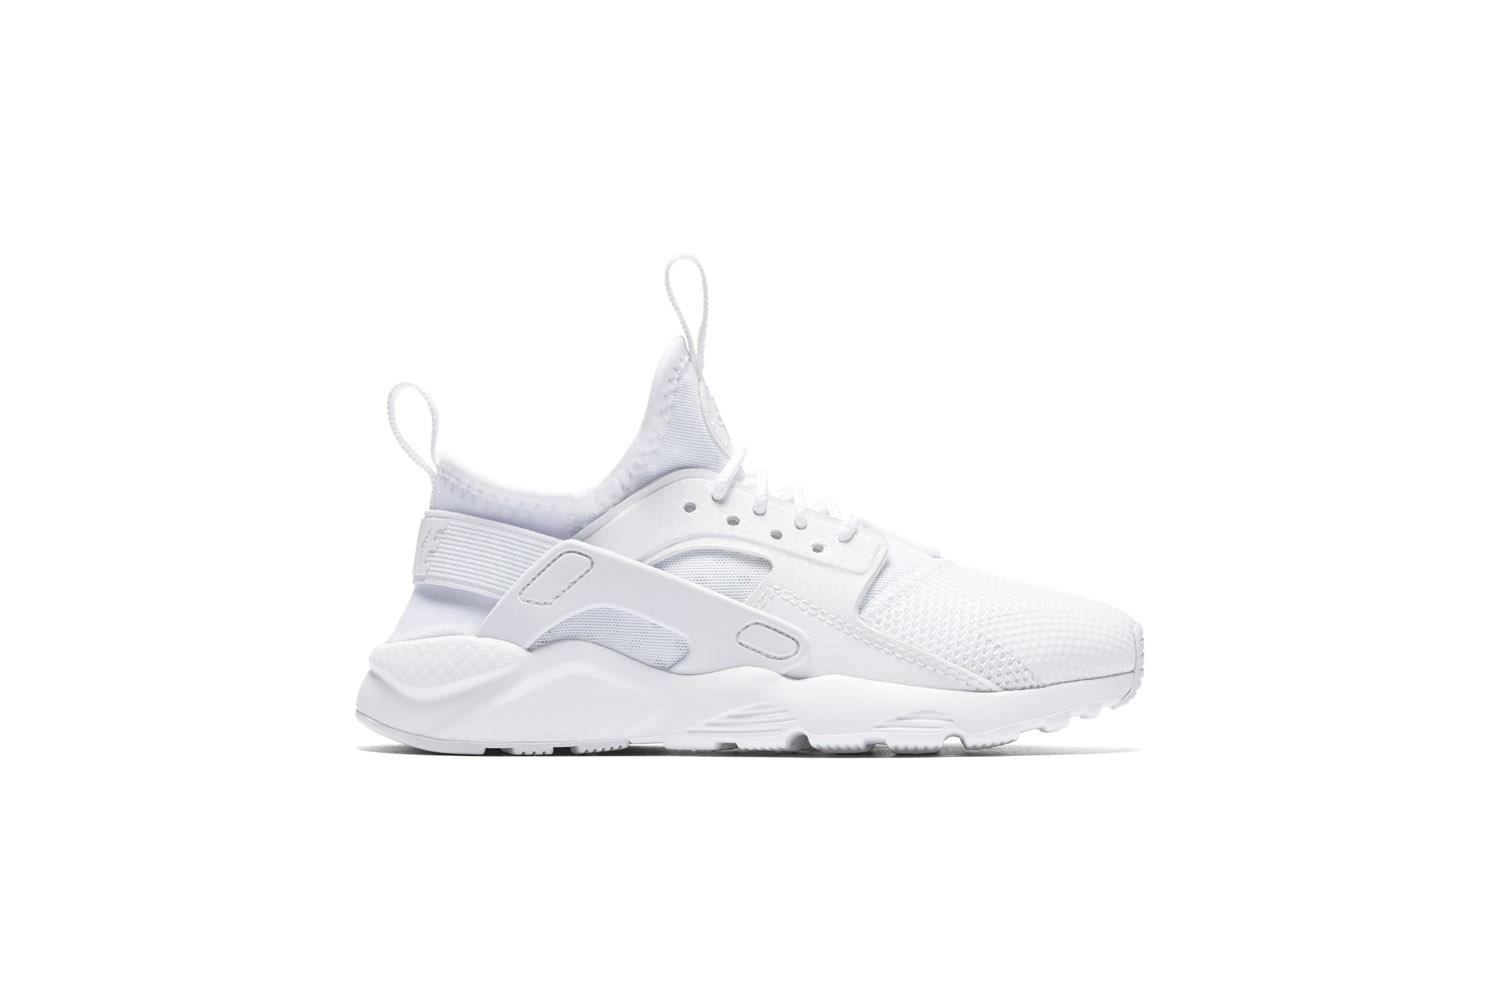 a14f831b5e987 Nike Air Huarache Run Ultra PS Bambini - NIKE AS - Anaclerico Sport